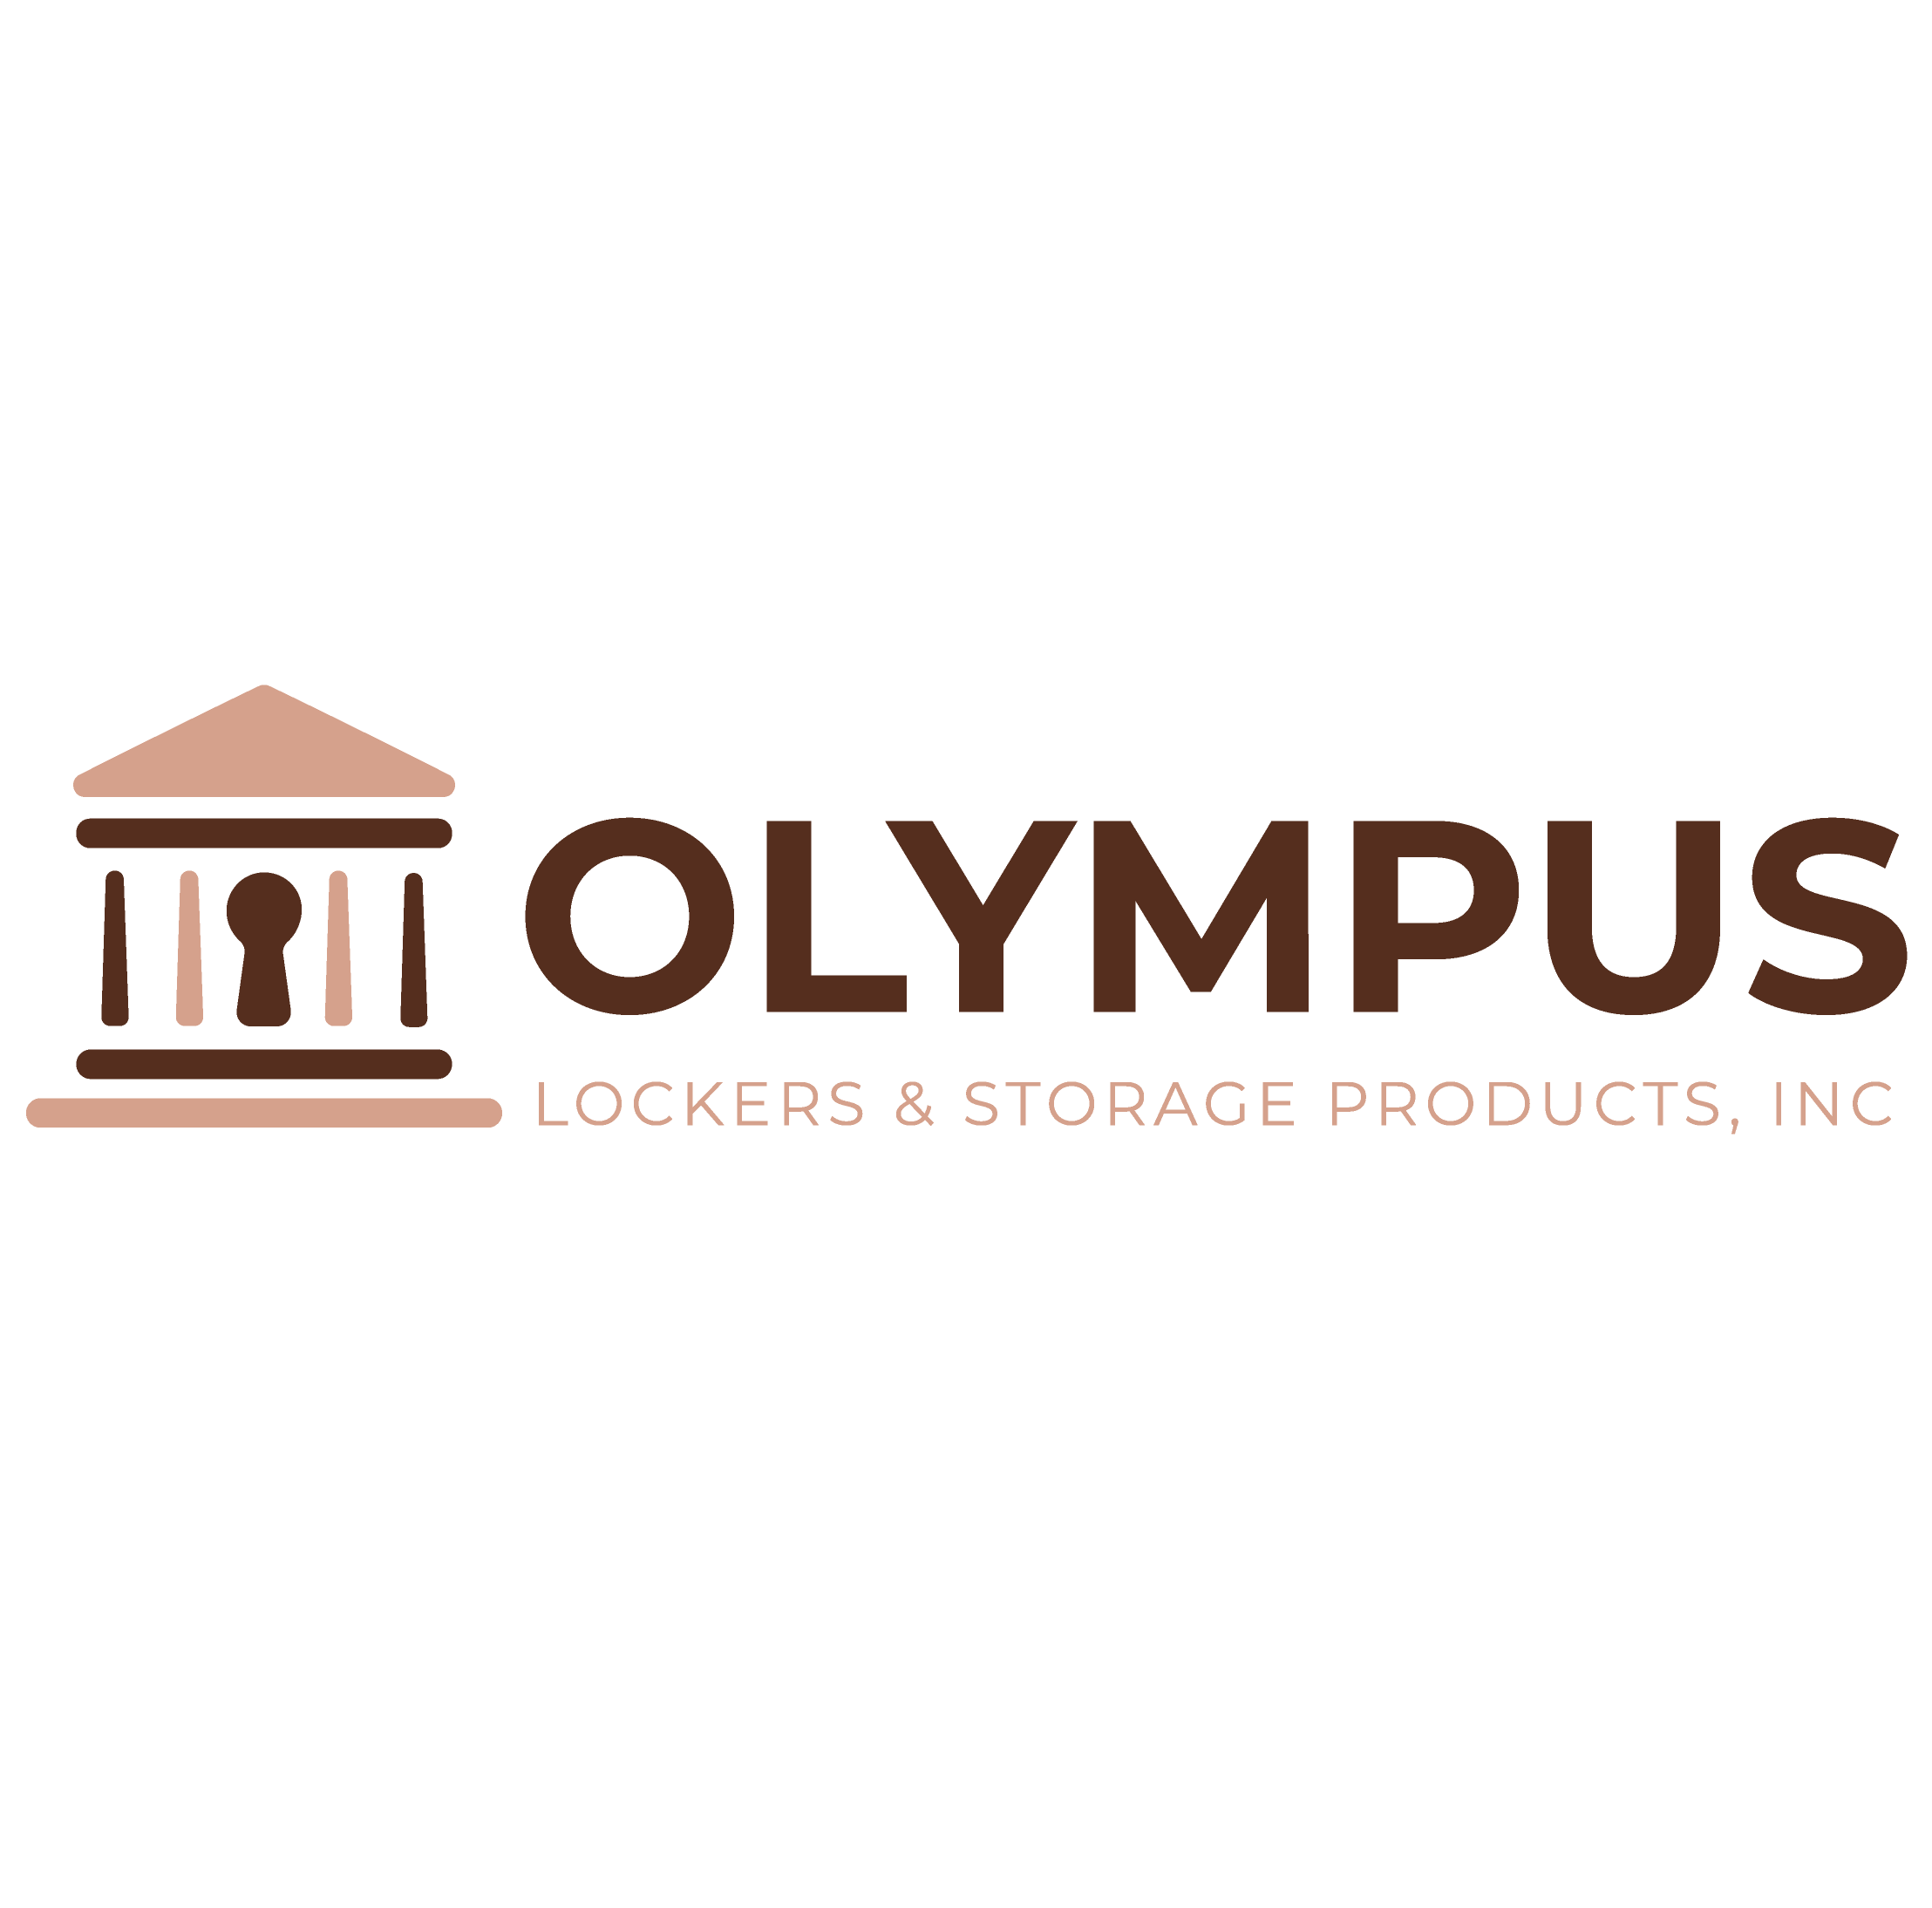 Olympus Lockers & Storage Products, Inc Logo